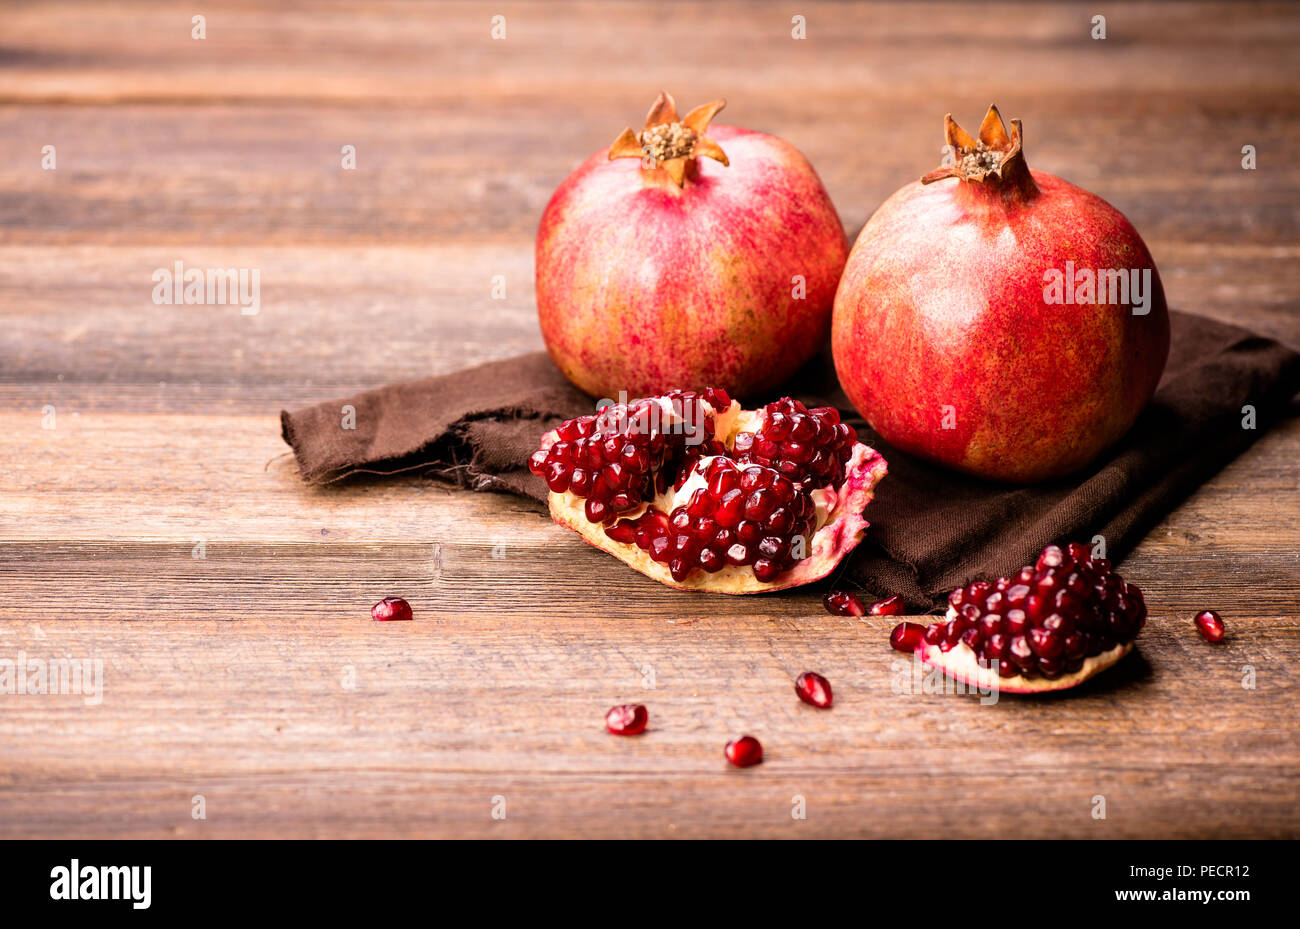 Pomegranate fruits with grains on wooden table. - Stock Image